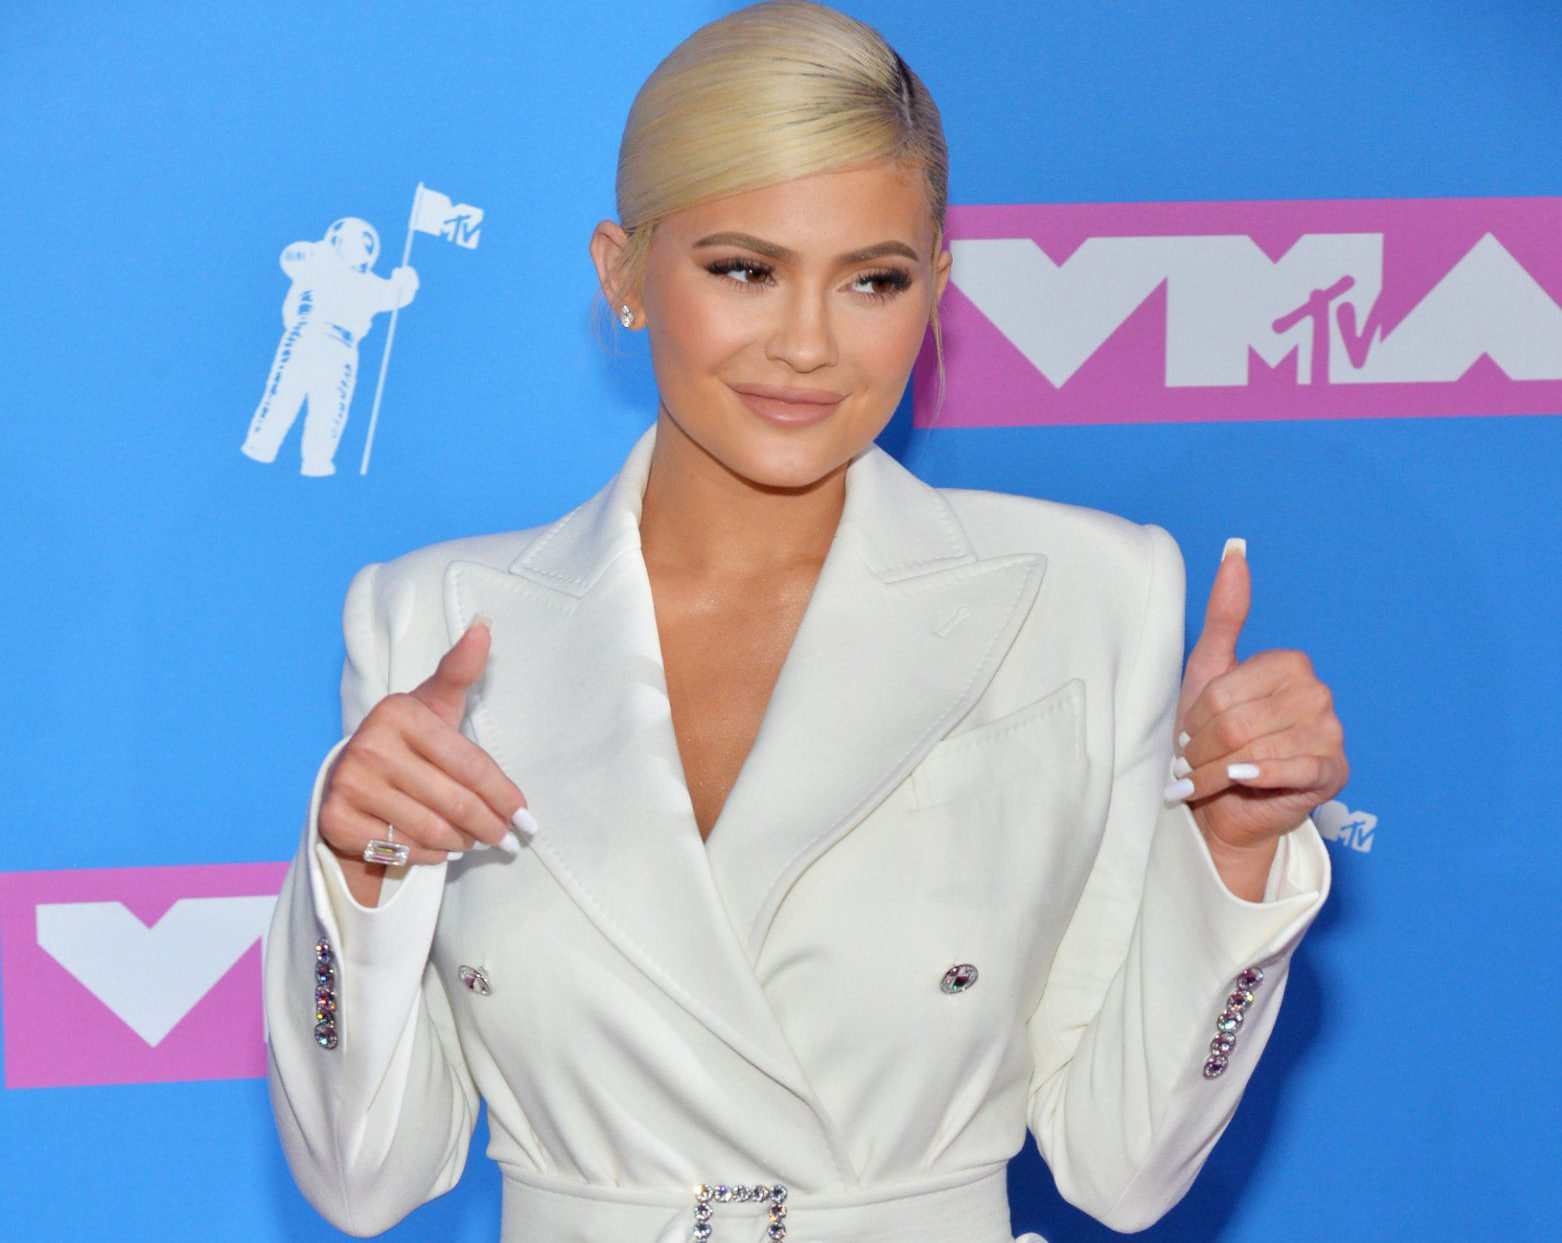 Mandatory Credit: Photo by REX/Shutterstock (9795338da) Kylie Jenner MTV Video Music Awards, Arrivals, New York, USA - 20 Aug 2018